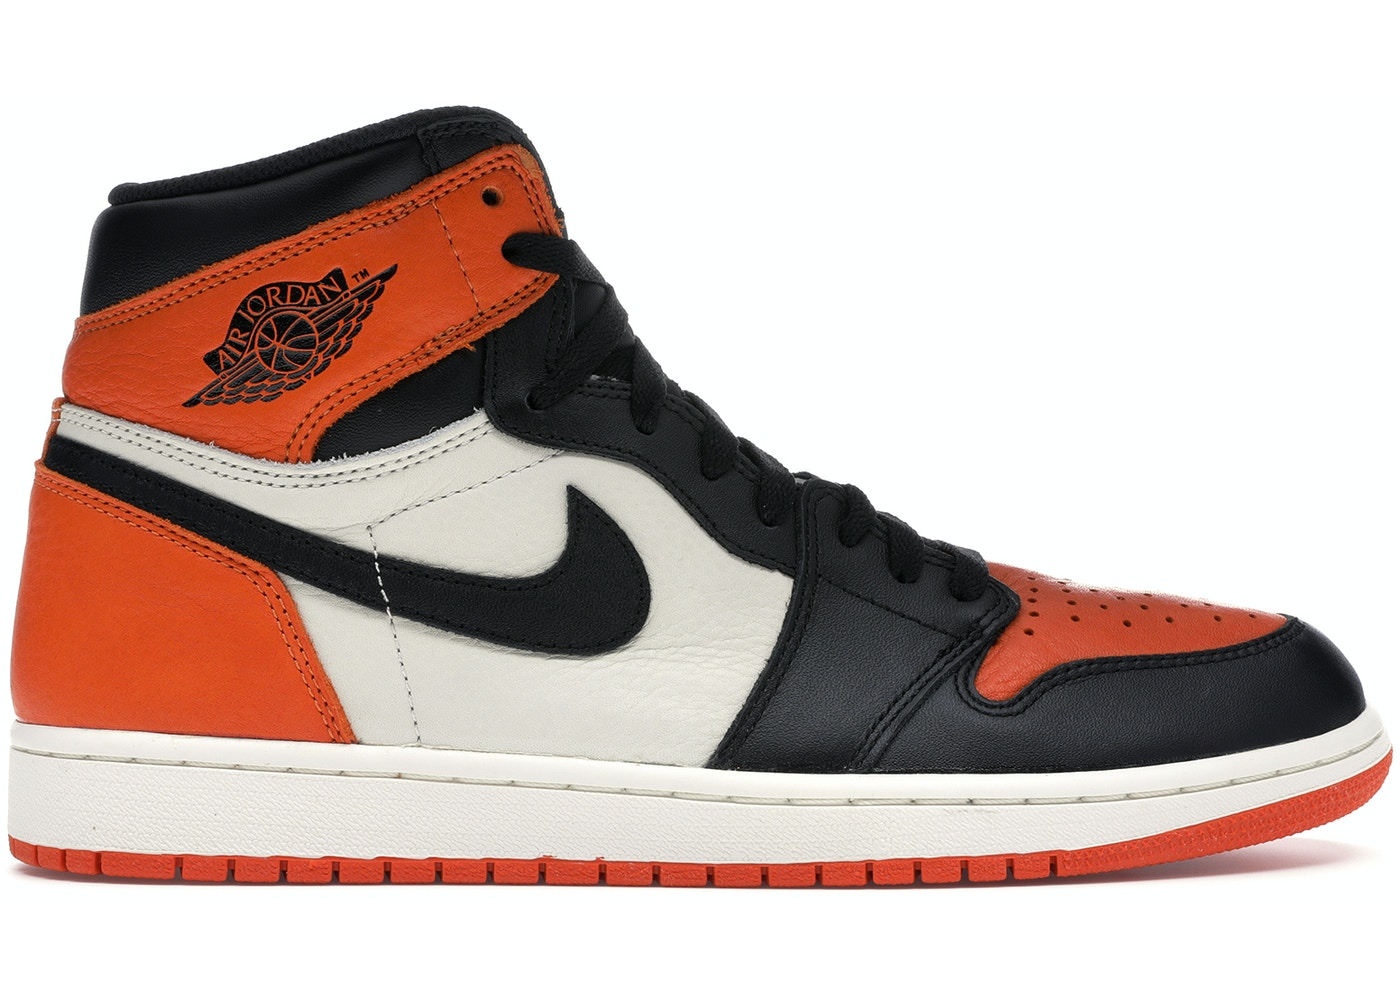 designer fashion 46e5a eb3ae Jordan 1 Retro Shattered Backboard